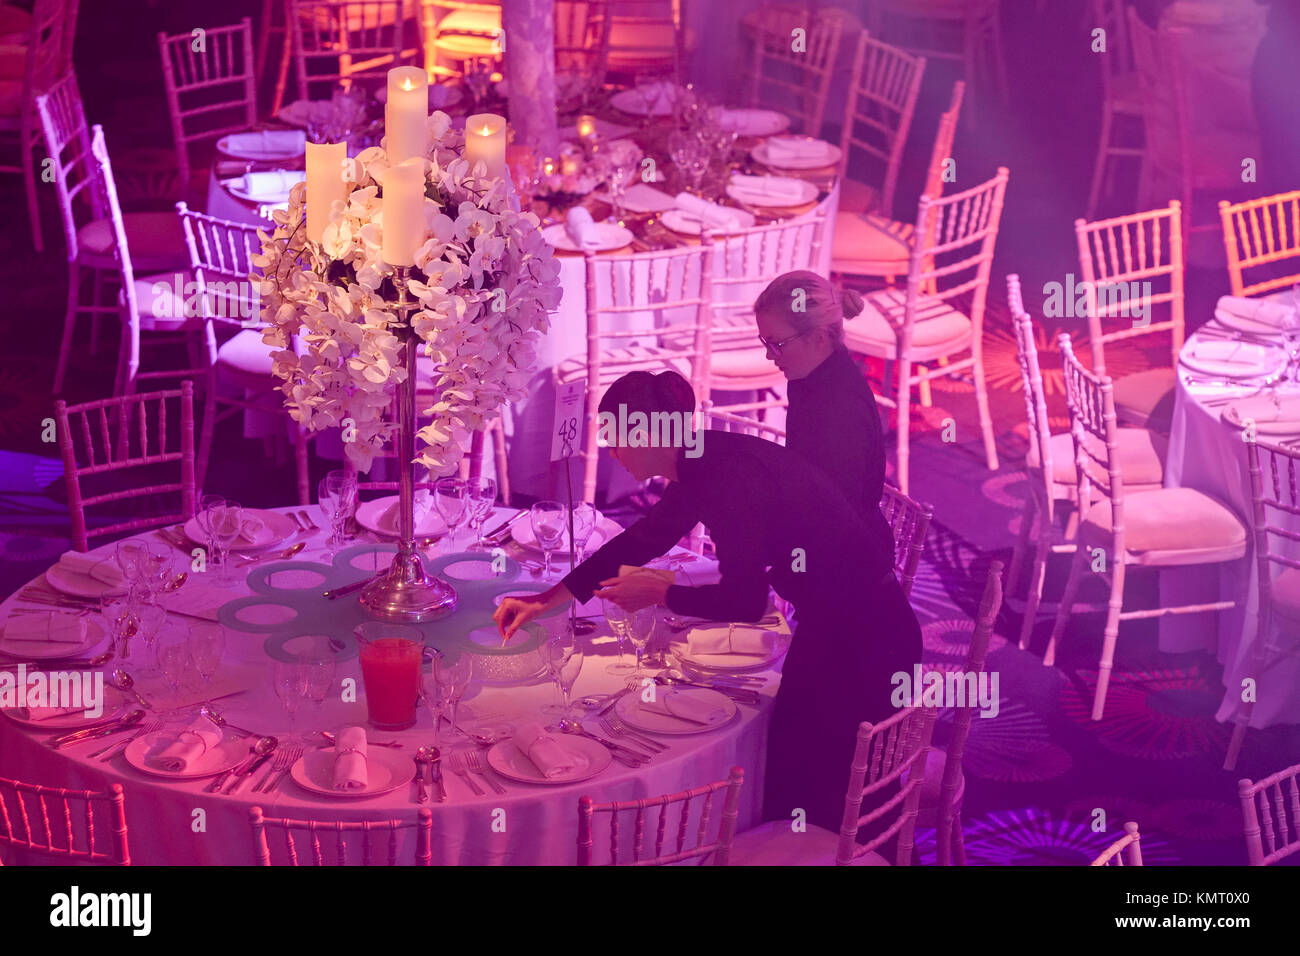 Staff preparing Table decorations at high end hotel wedding ...